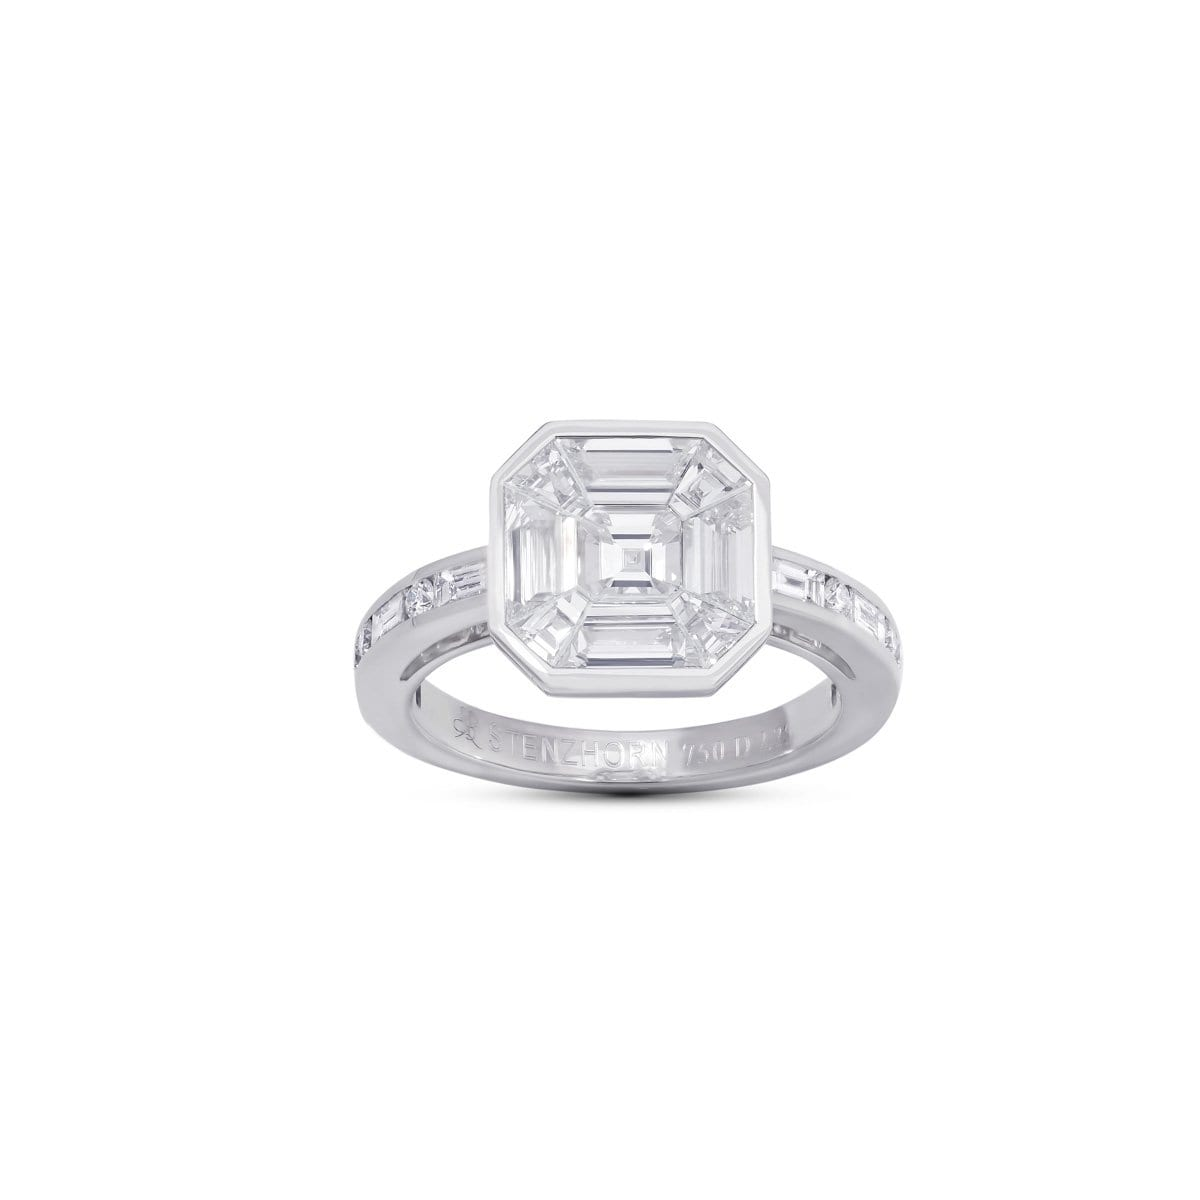 ICED ZEIT, Ring - STENZHORN JEWELLERY